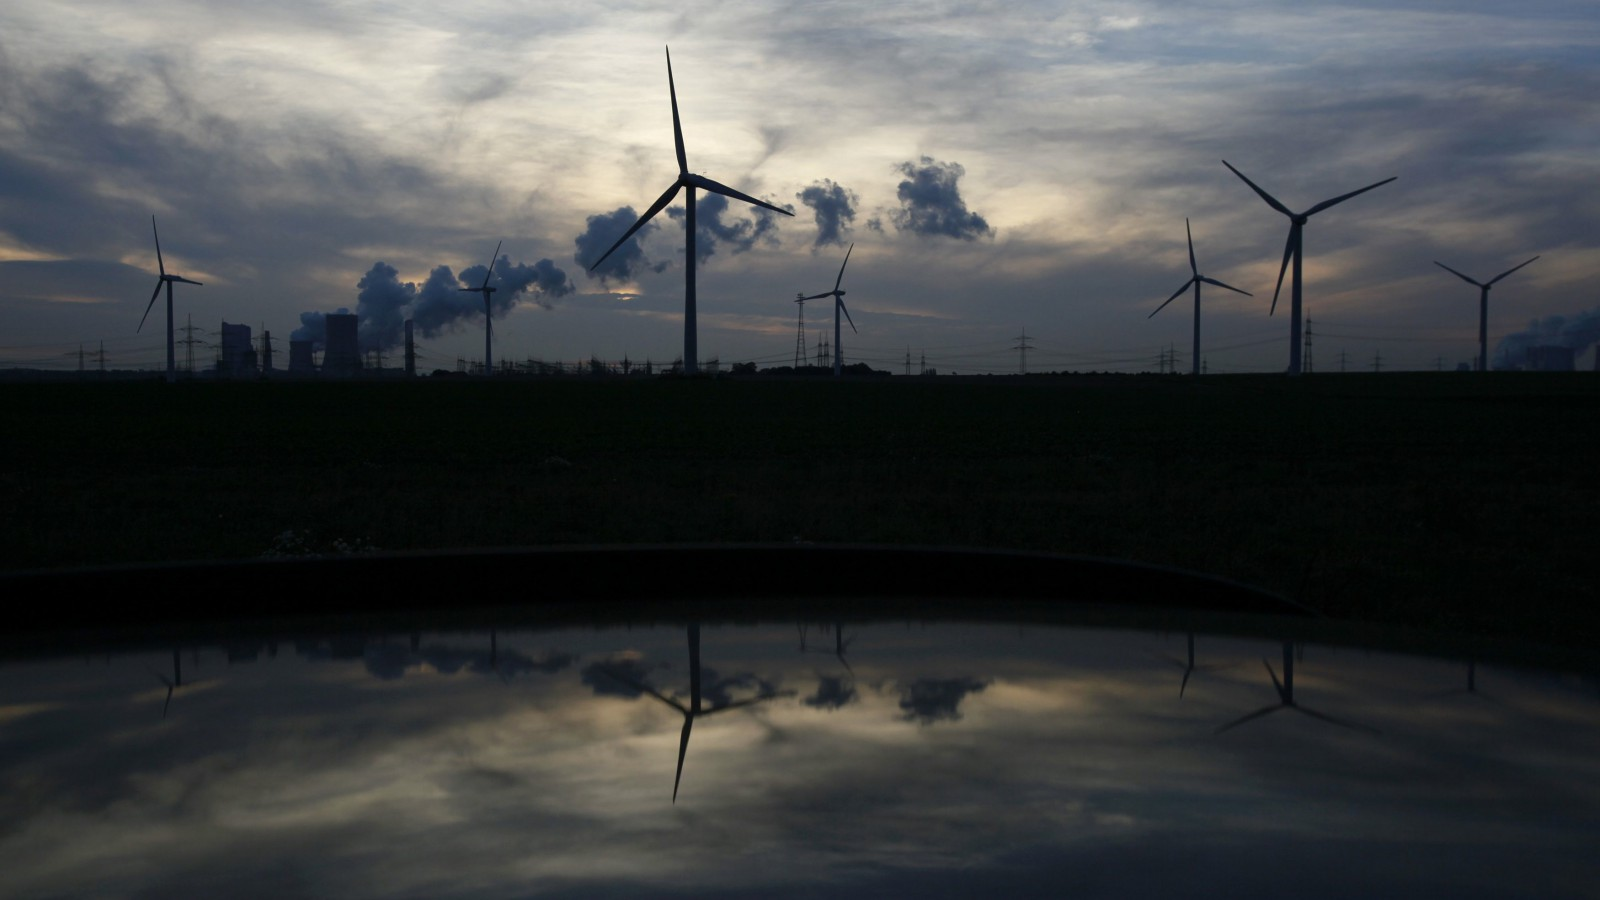 Wind generators and the Niederaussem coal power plant of RWE Power, one of Europe's biggest electricity and gas companies, are reflected in the roof of a car in Rheidt, north-west of Cologne .